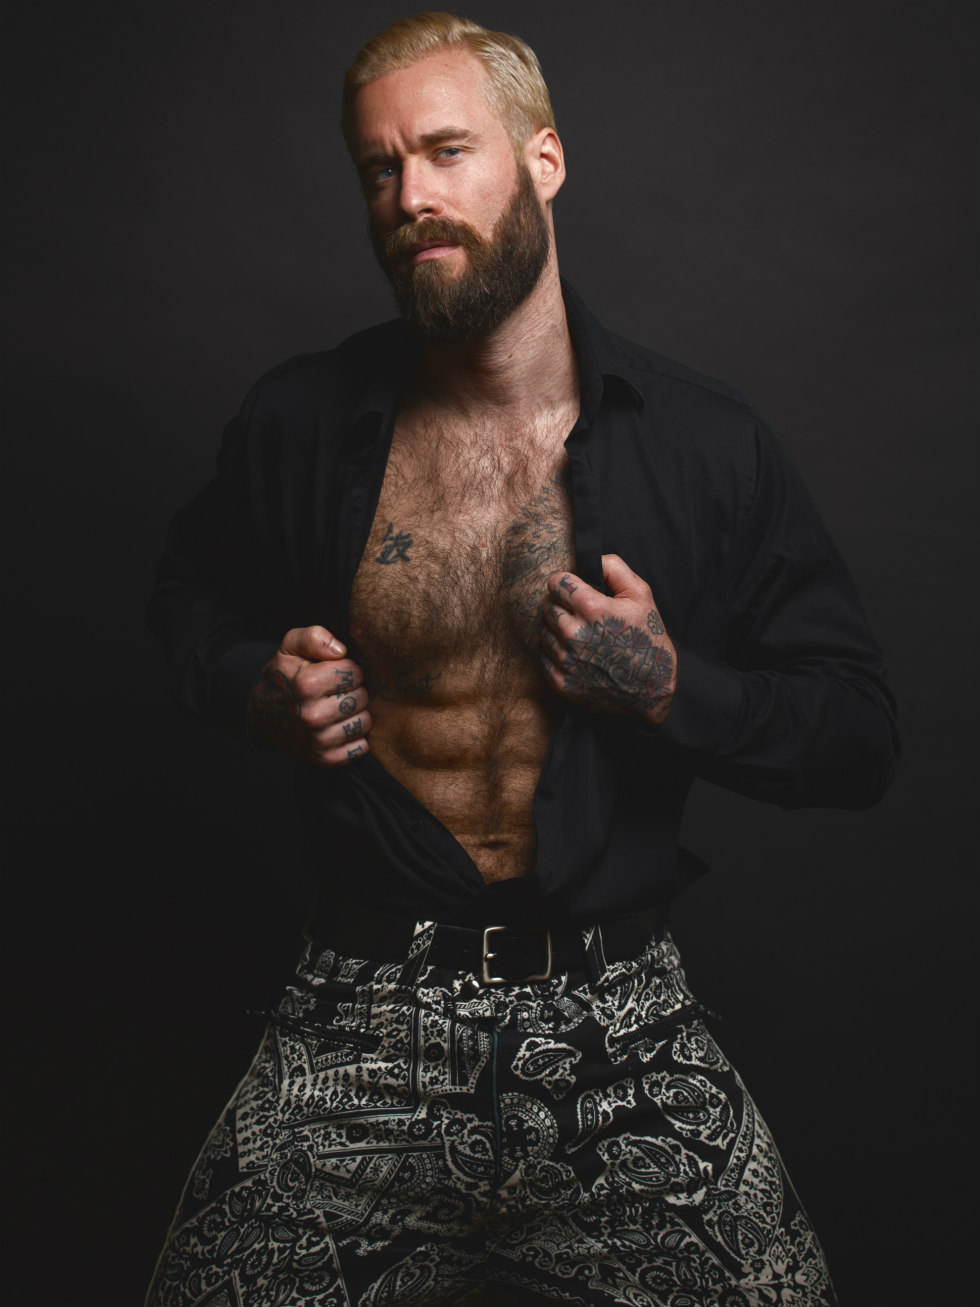 When you're a model or photographer and your based in New York City you've got to work with stylist Kai Jankovic, that's it. New sensation Gabe LaDuke gets style a la Jankovic the creative director of this project, shooting by Jade Young, apparels used by Designer Larry Underwood.